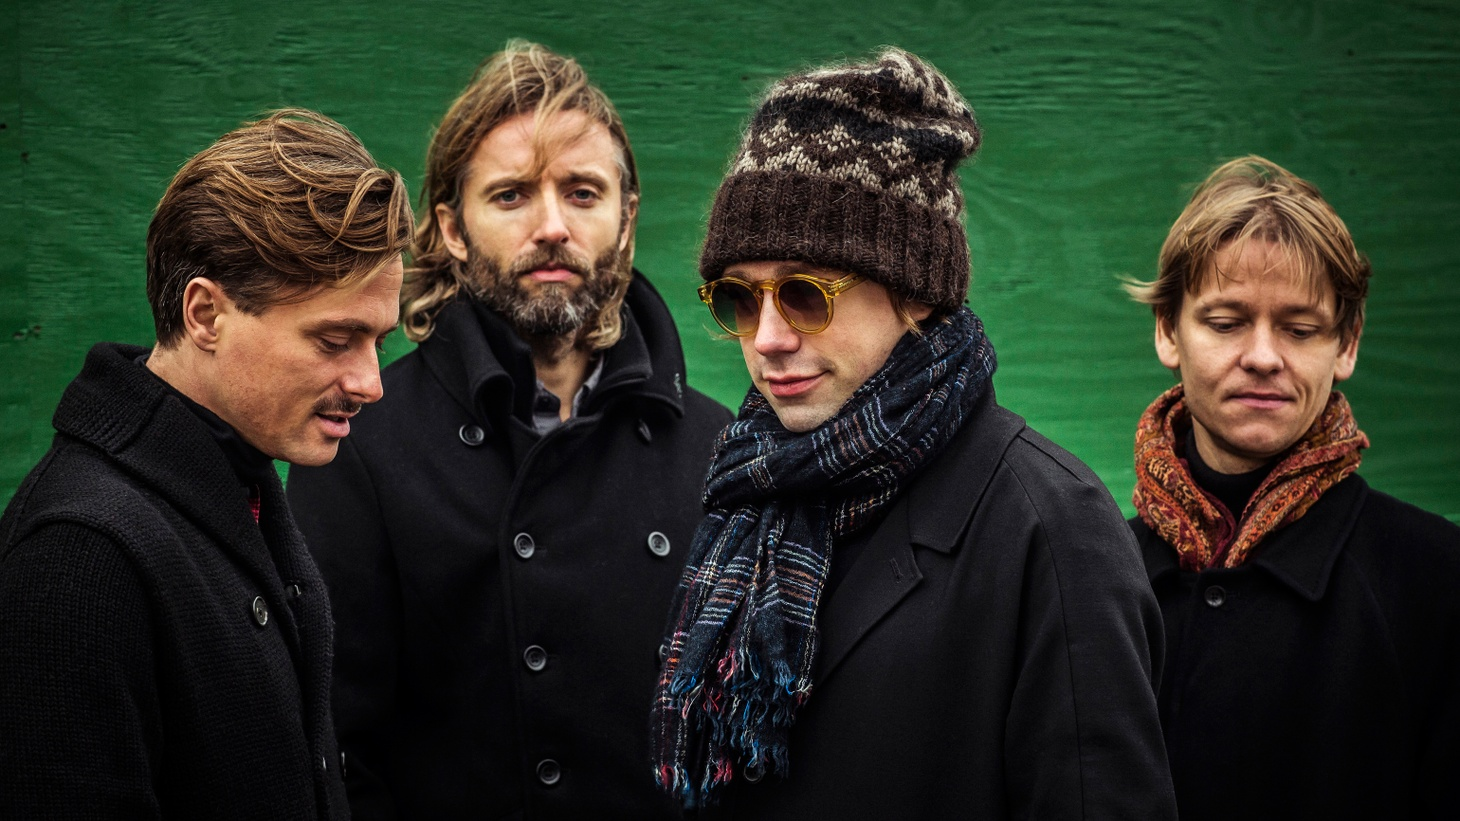 Danish art rockers Mew have played together for the past 20 years, but they have recently reconfigured their line-up to invigorate the sound on their sixth studio album, their most ambitious to date.